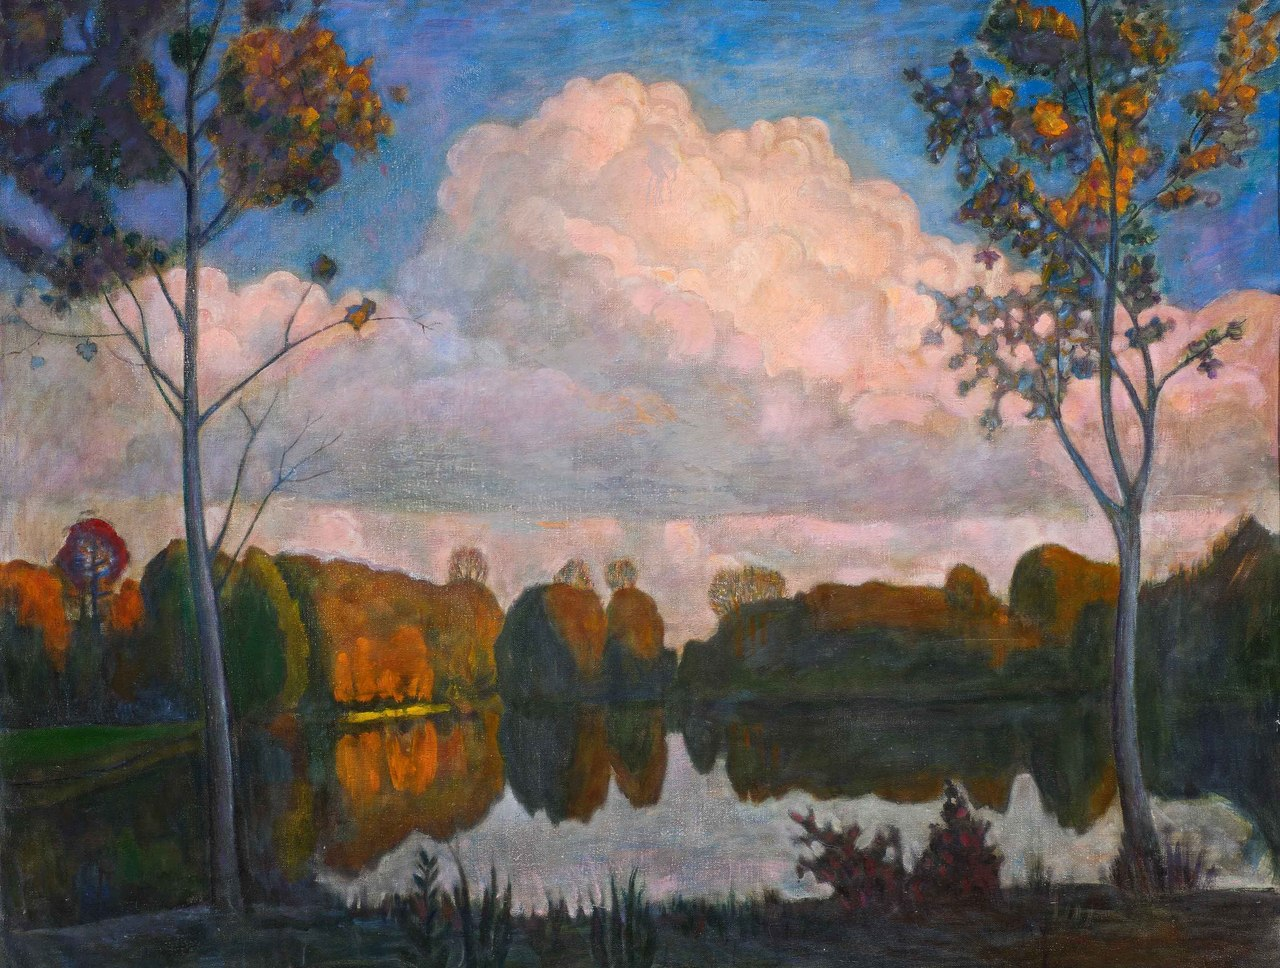 Landscape with a cloud